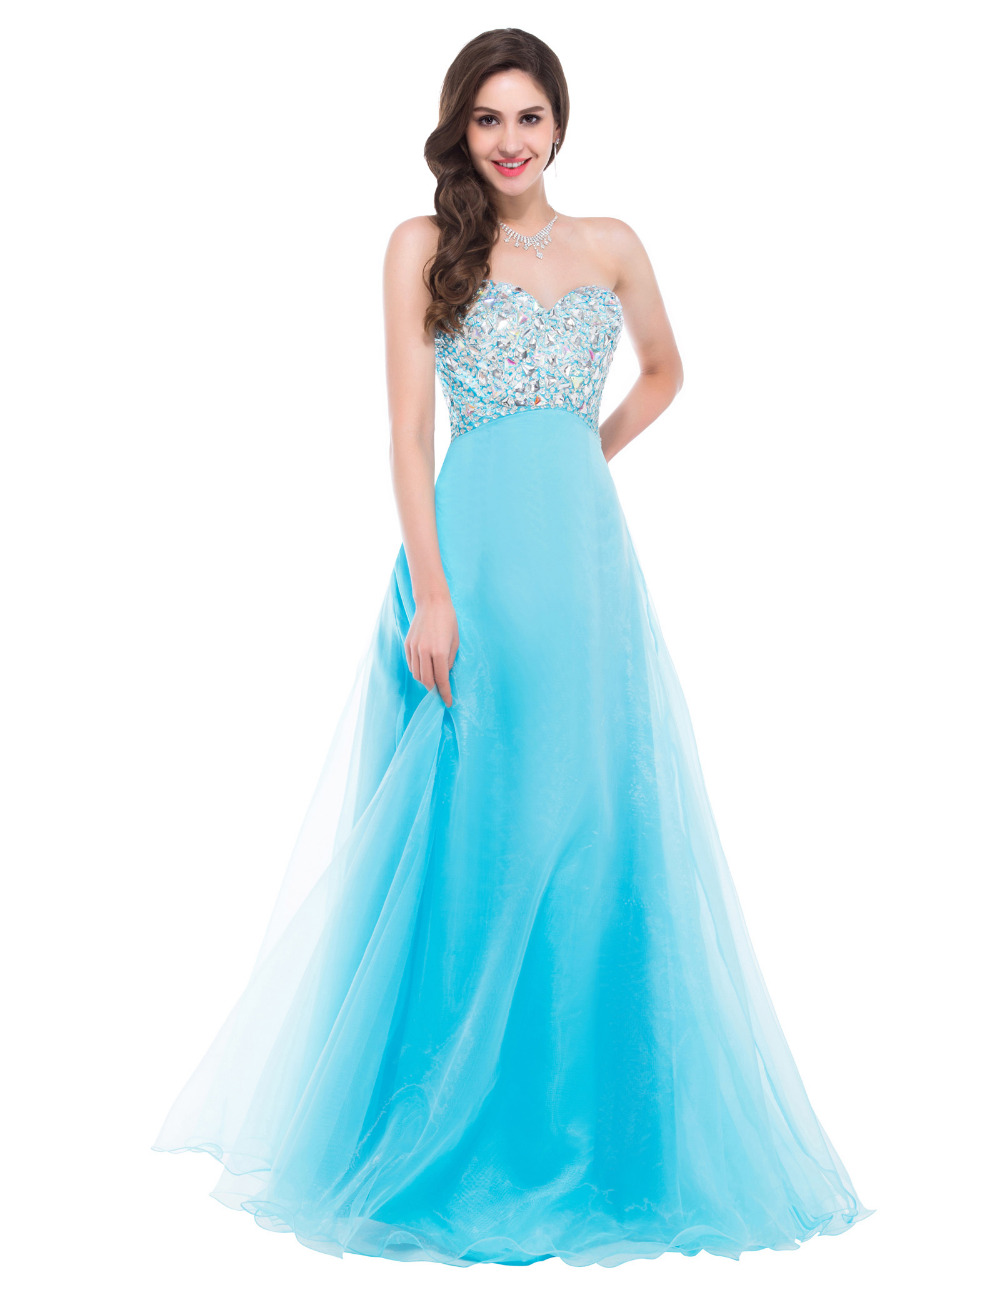 Pink Purple And Blue Prom Dresses - Homecoming Prom Dresses